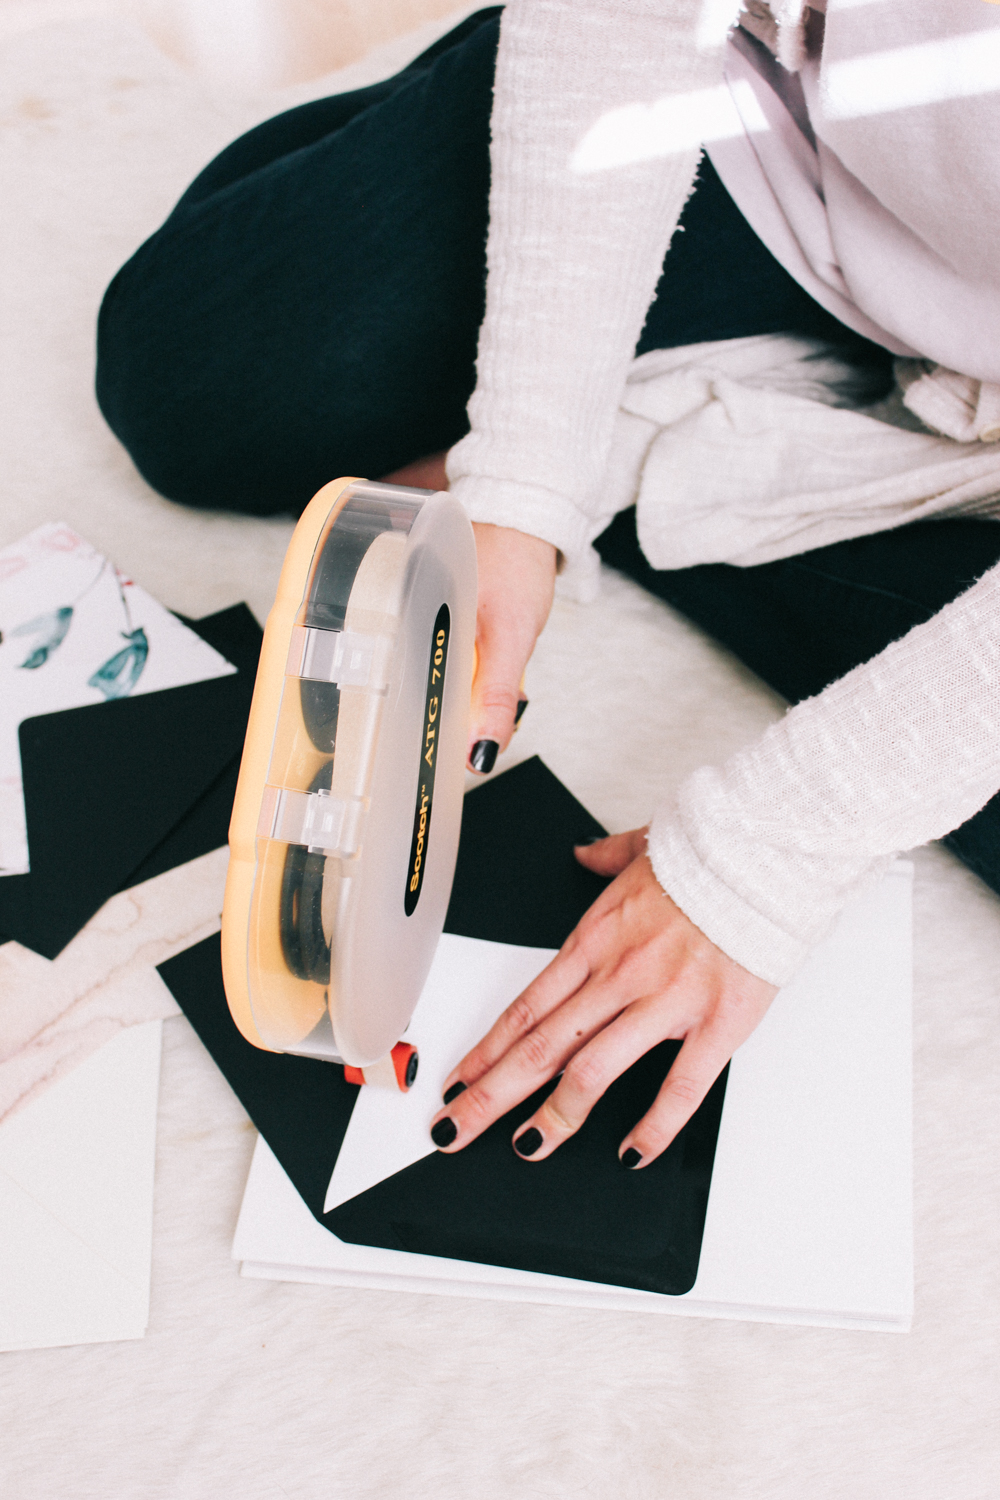 How to use an adhesive applicator for lining envelopes | A Fabulous Fete